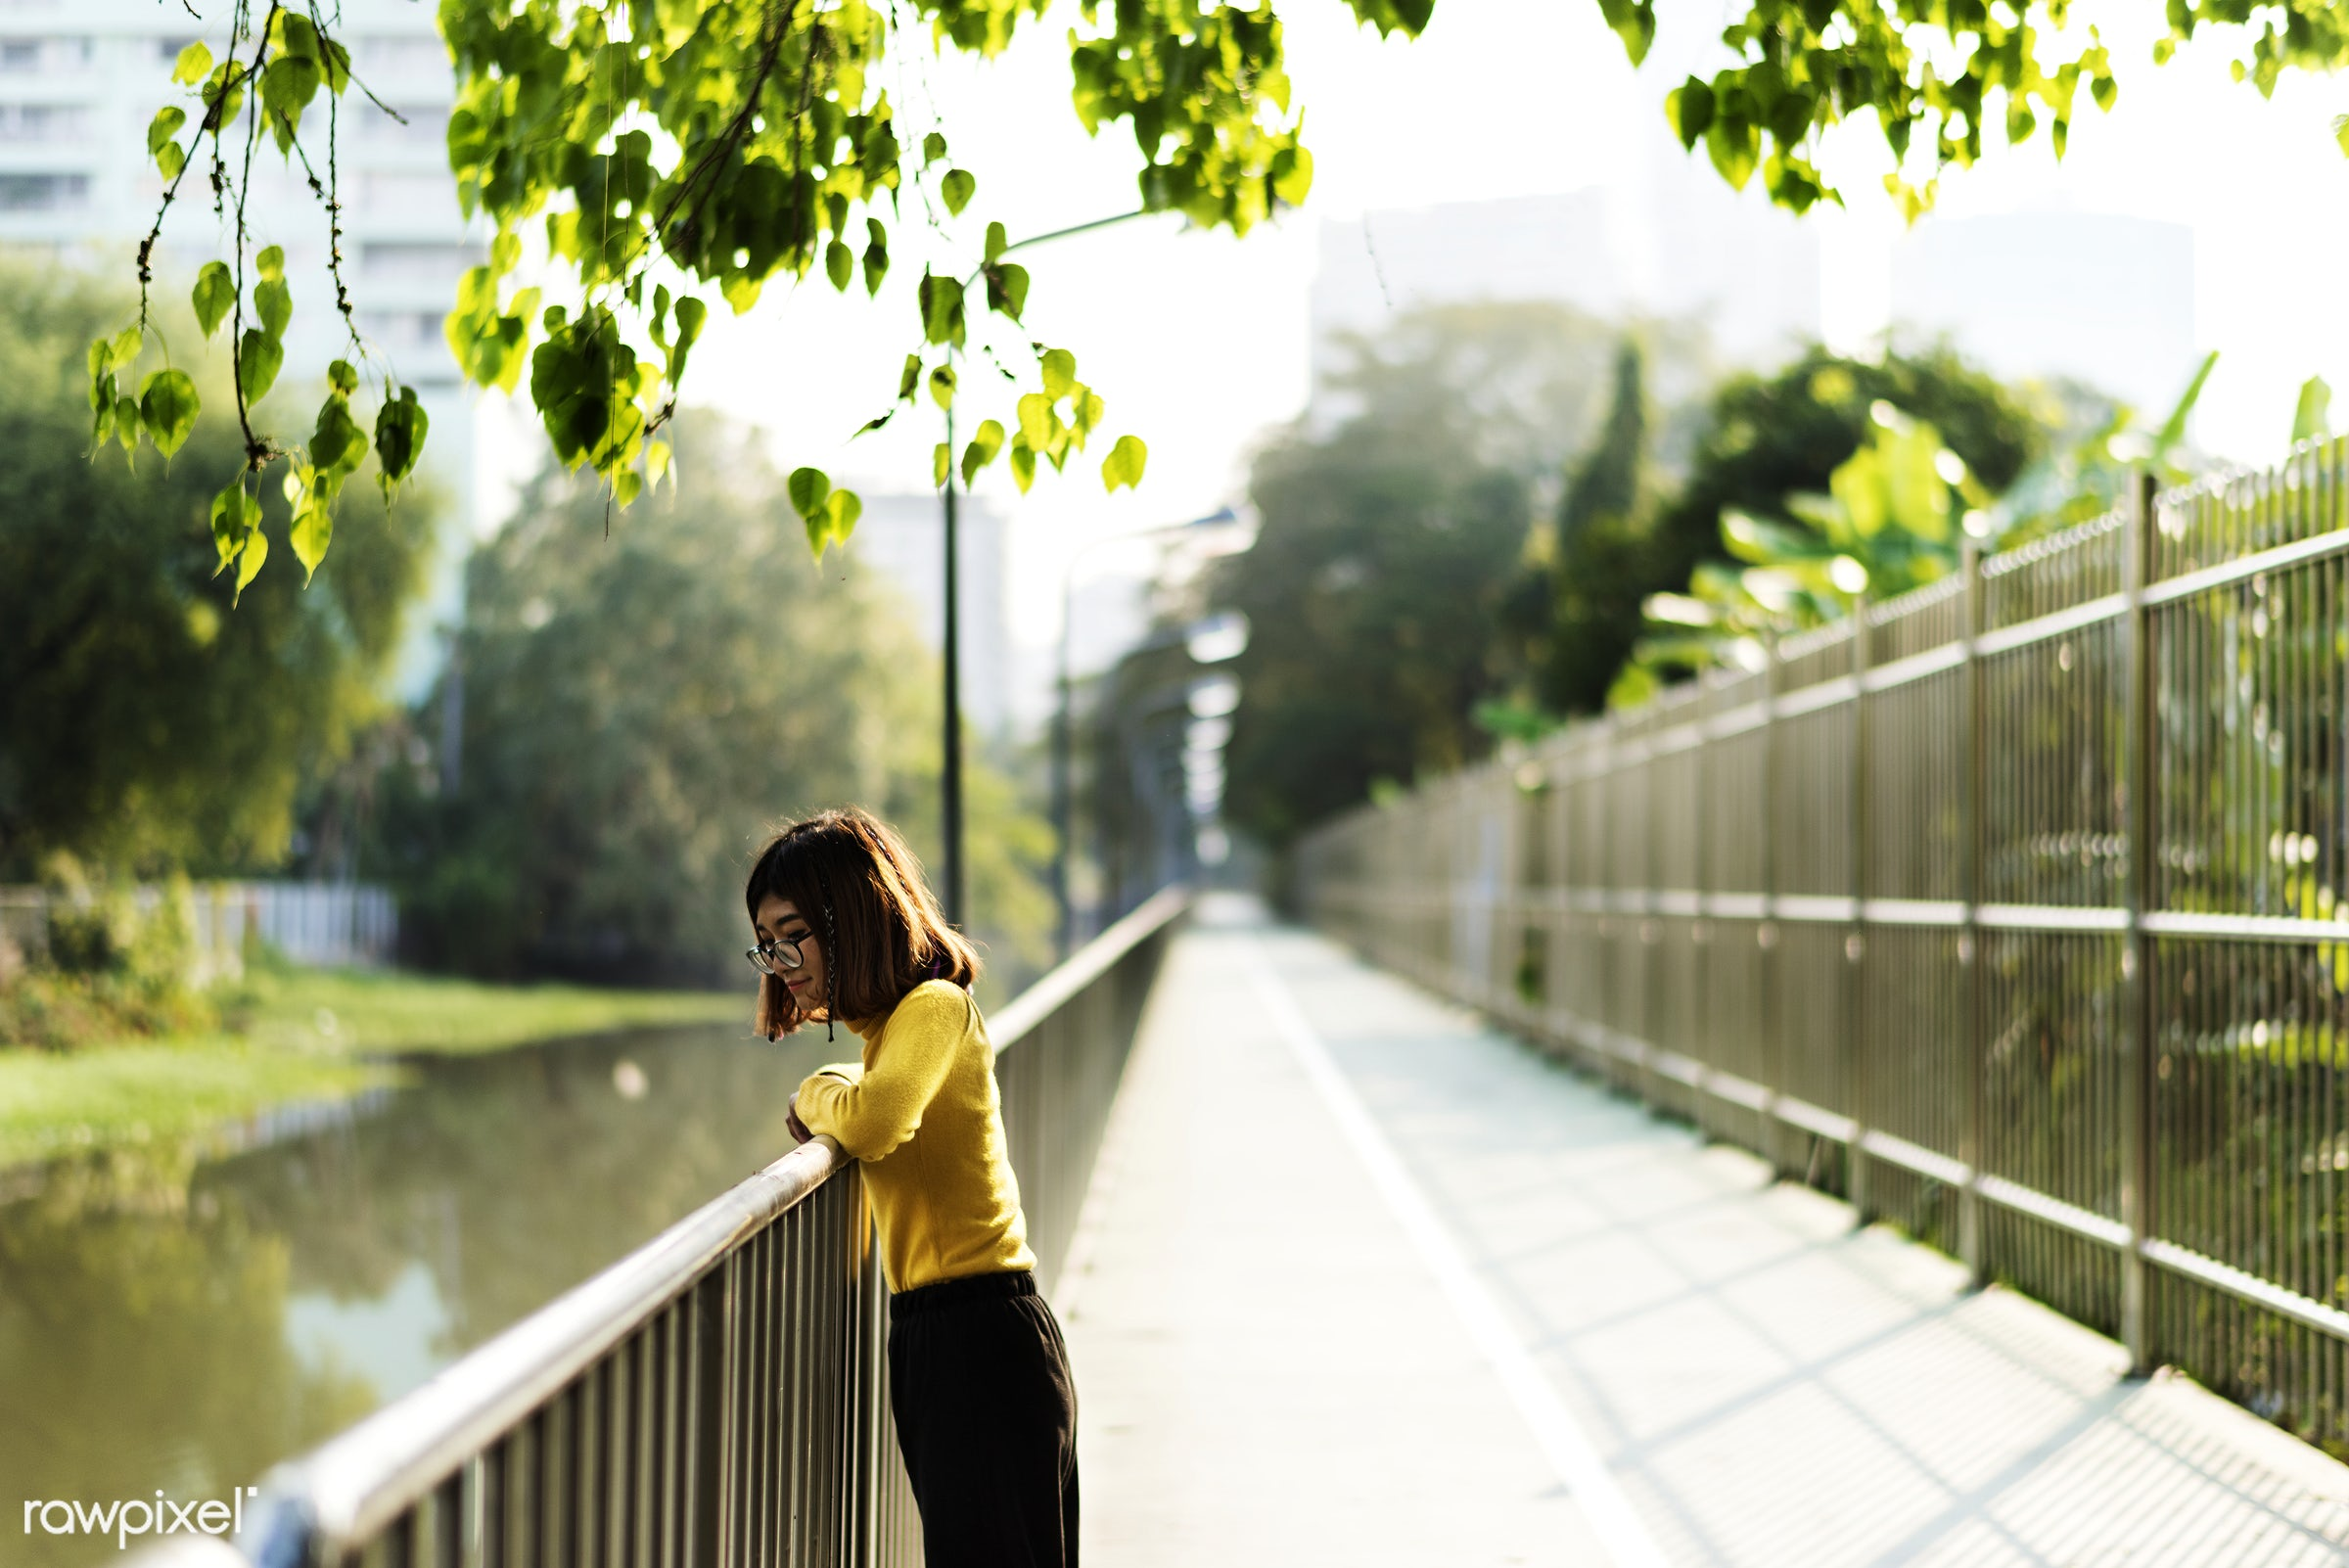 Girl looking at the river over the railing - girl, woman, looking, nature, outdoors, fence, railing, pathway, park, alone,...